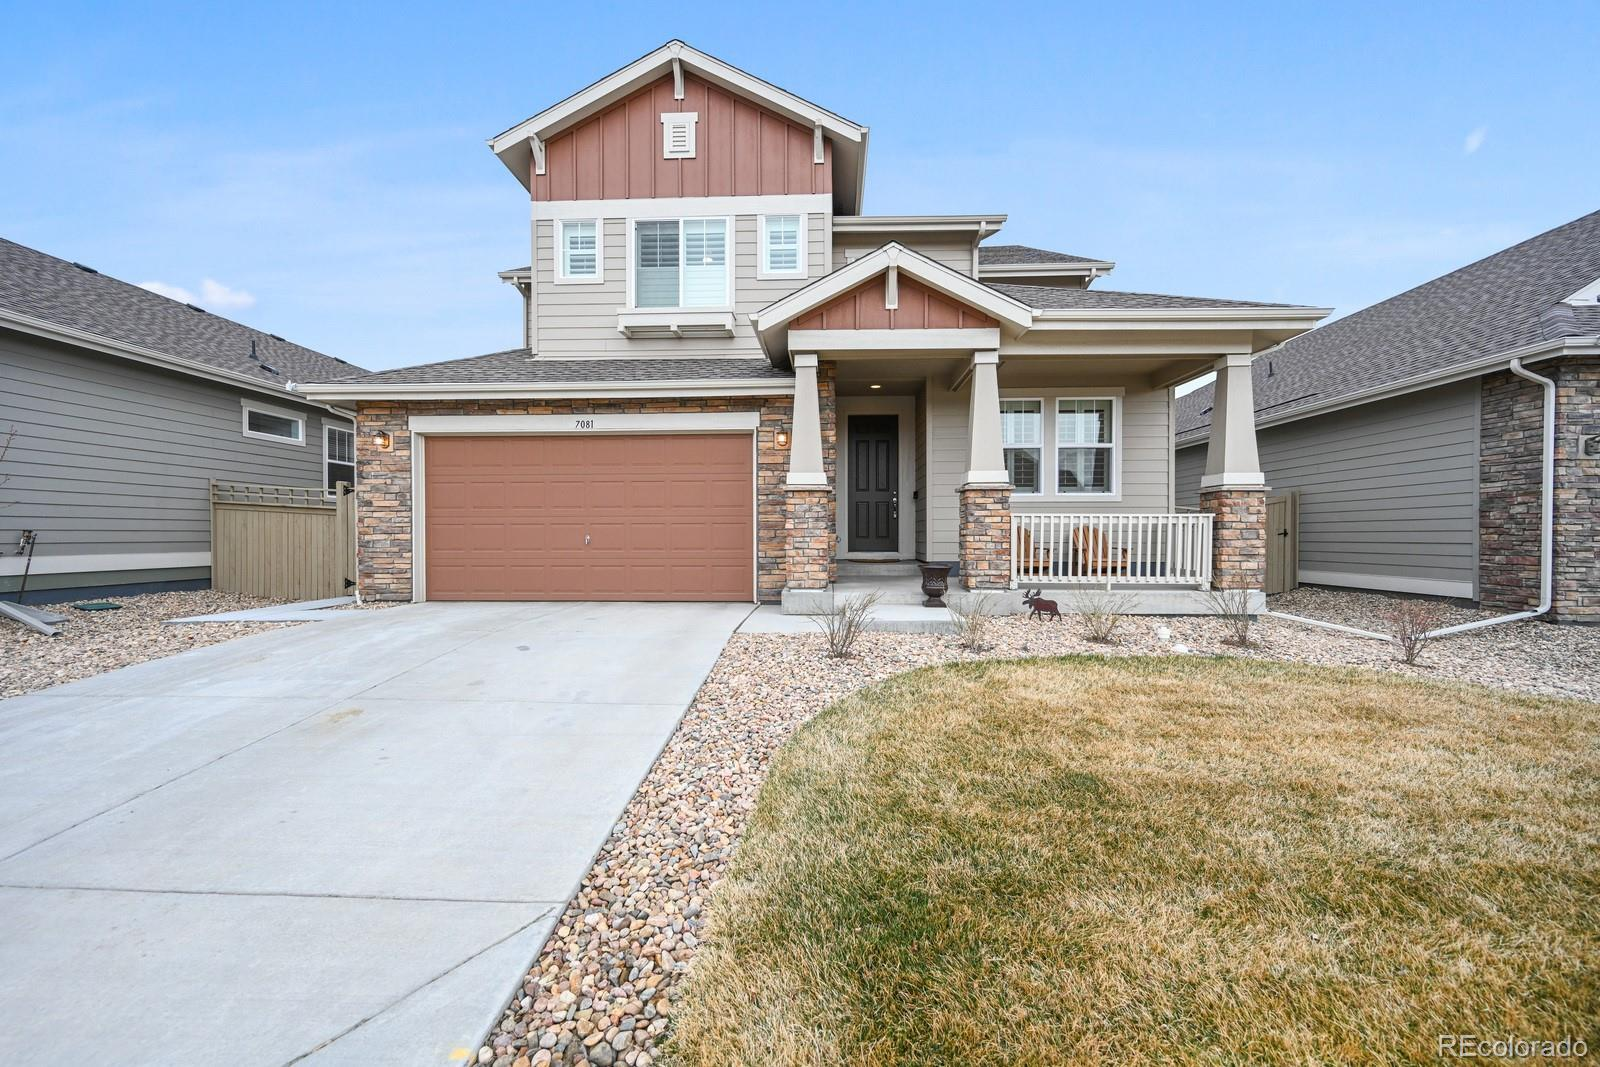 MLS# 2557430 - 1 - 7081 W Asbury Place, Lakewood, CO 80227